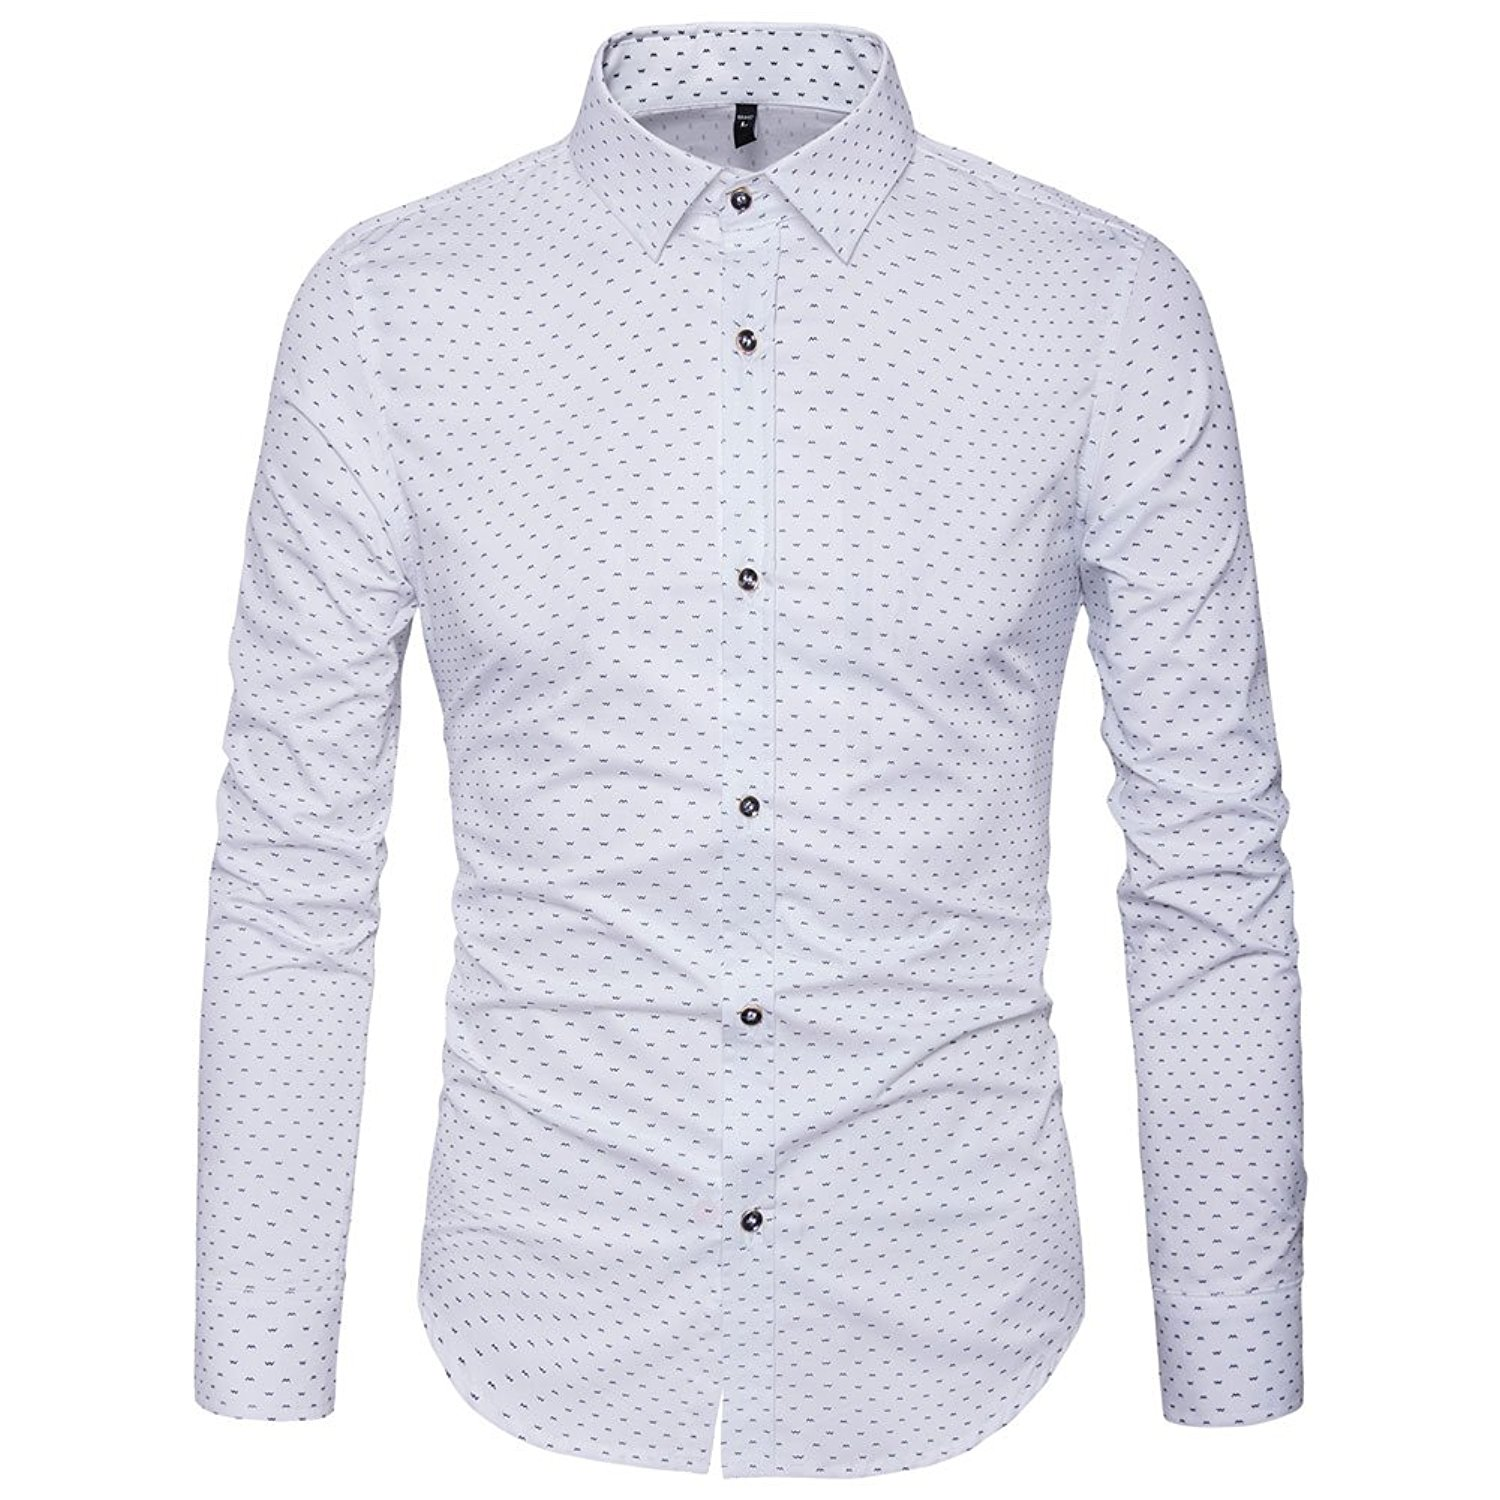 b54d28bcb68 MUSE FATH Mens Printed Dress Shirt-100% Cotton Casual Long Sleeve Shirt- Regular